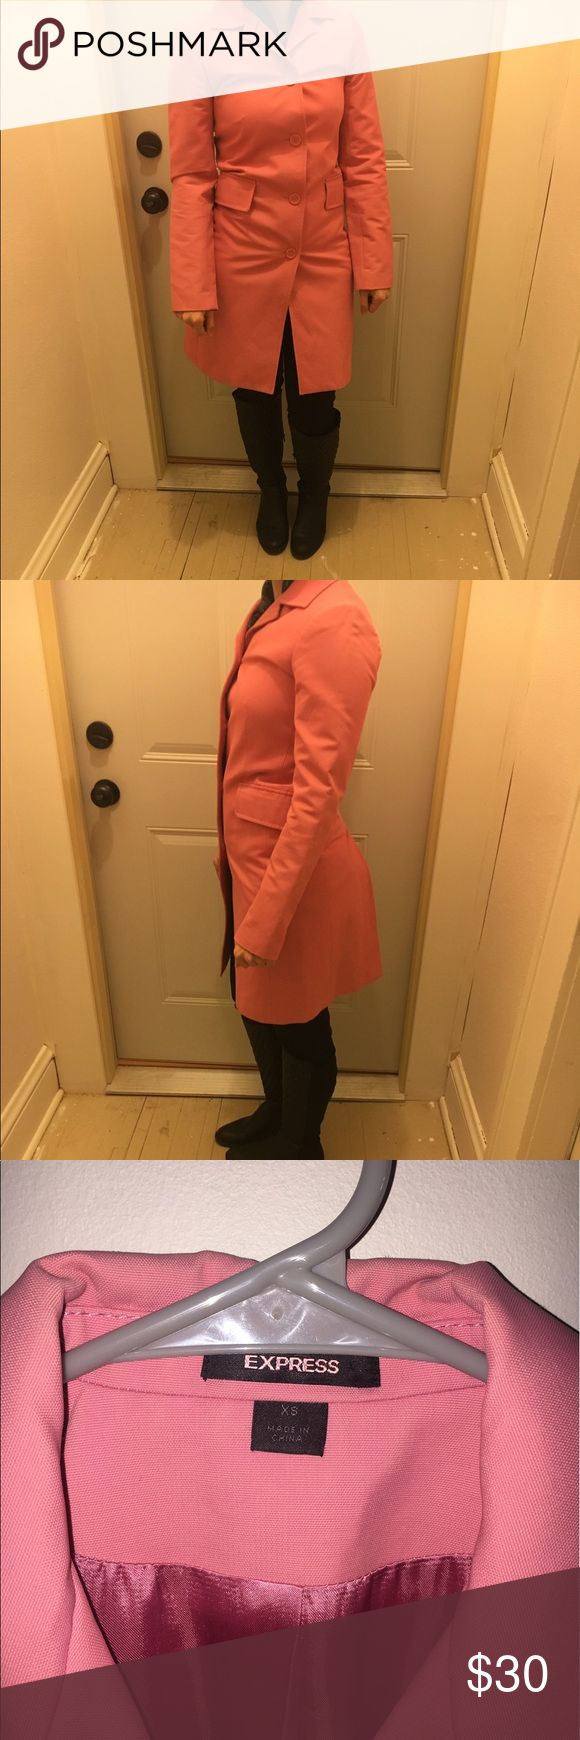 Pink express coat! I love this coat! It's great in the rain! Just a tad small on me- as shown in pics, size xs, good condition. Express Jackets & Coats